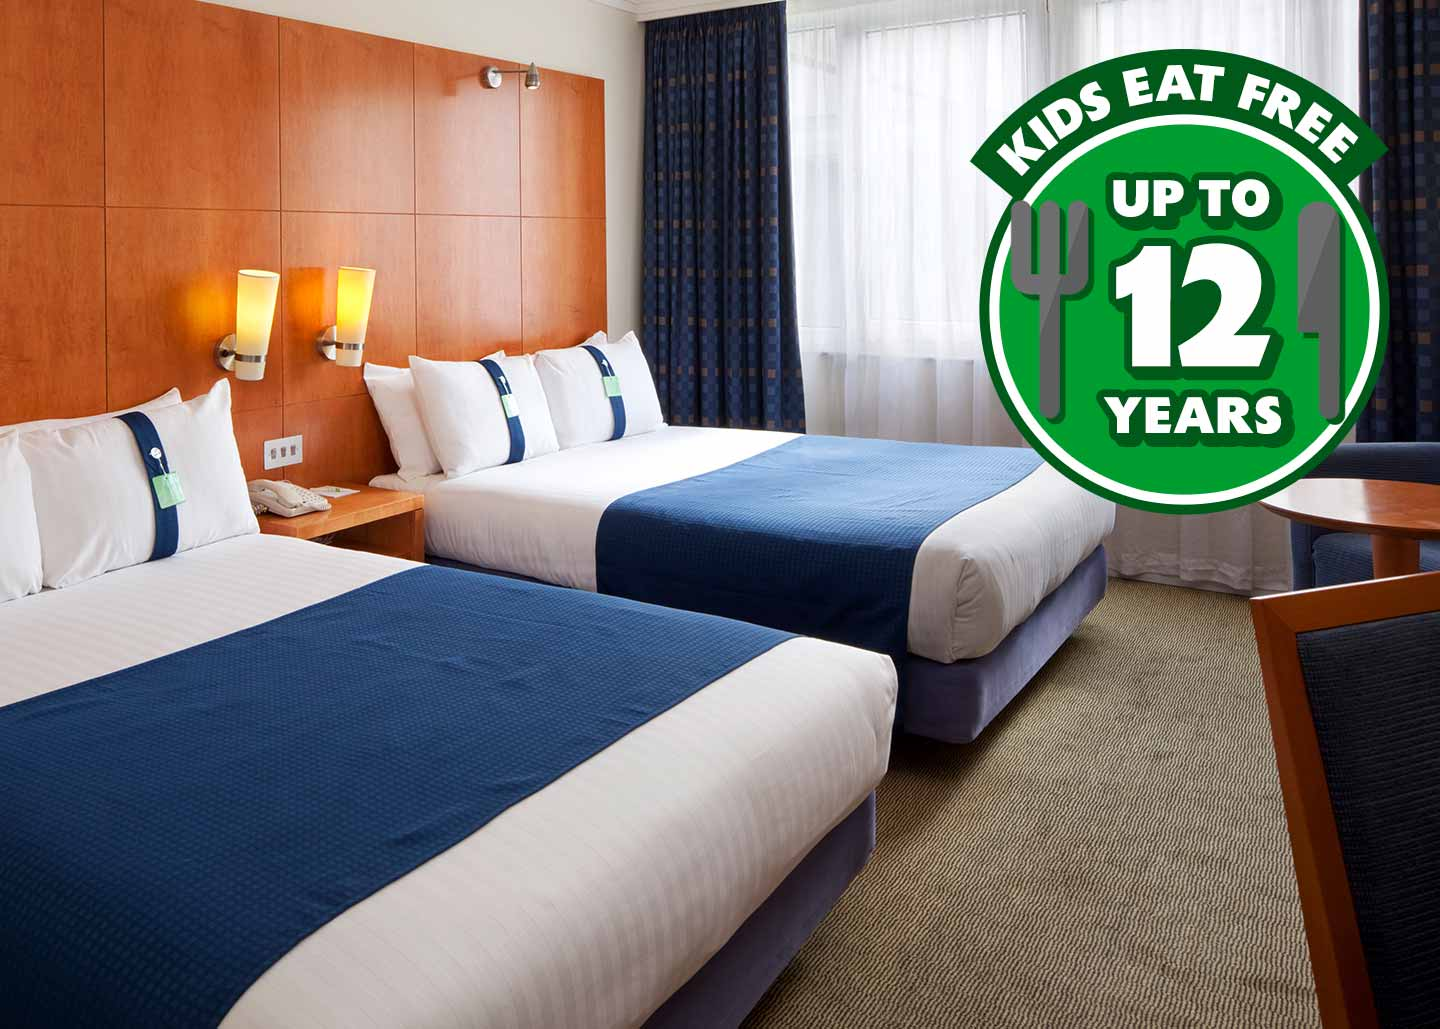 Stay at the Holiday Inn Maidenhead Windsor on your short break